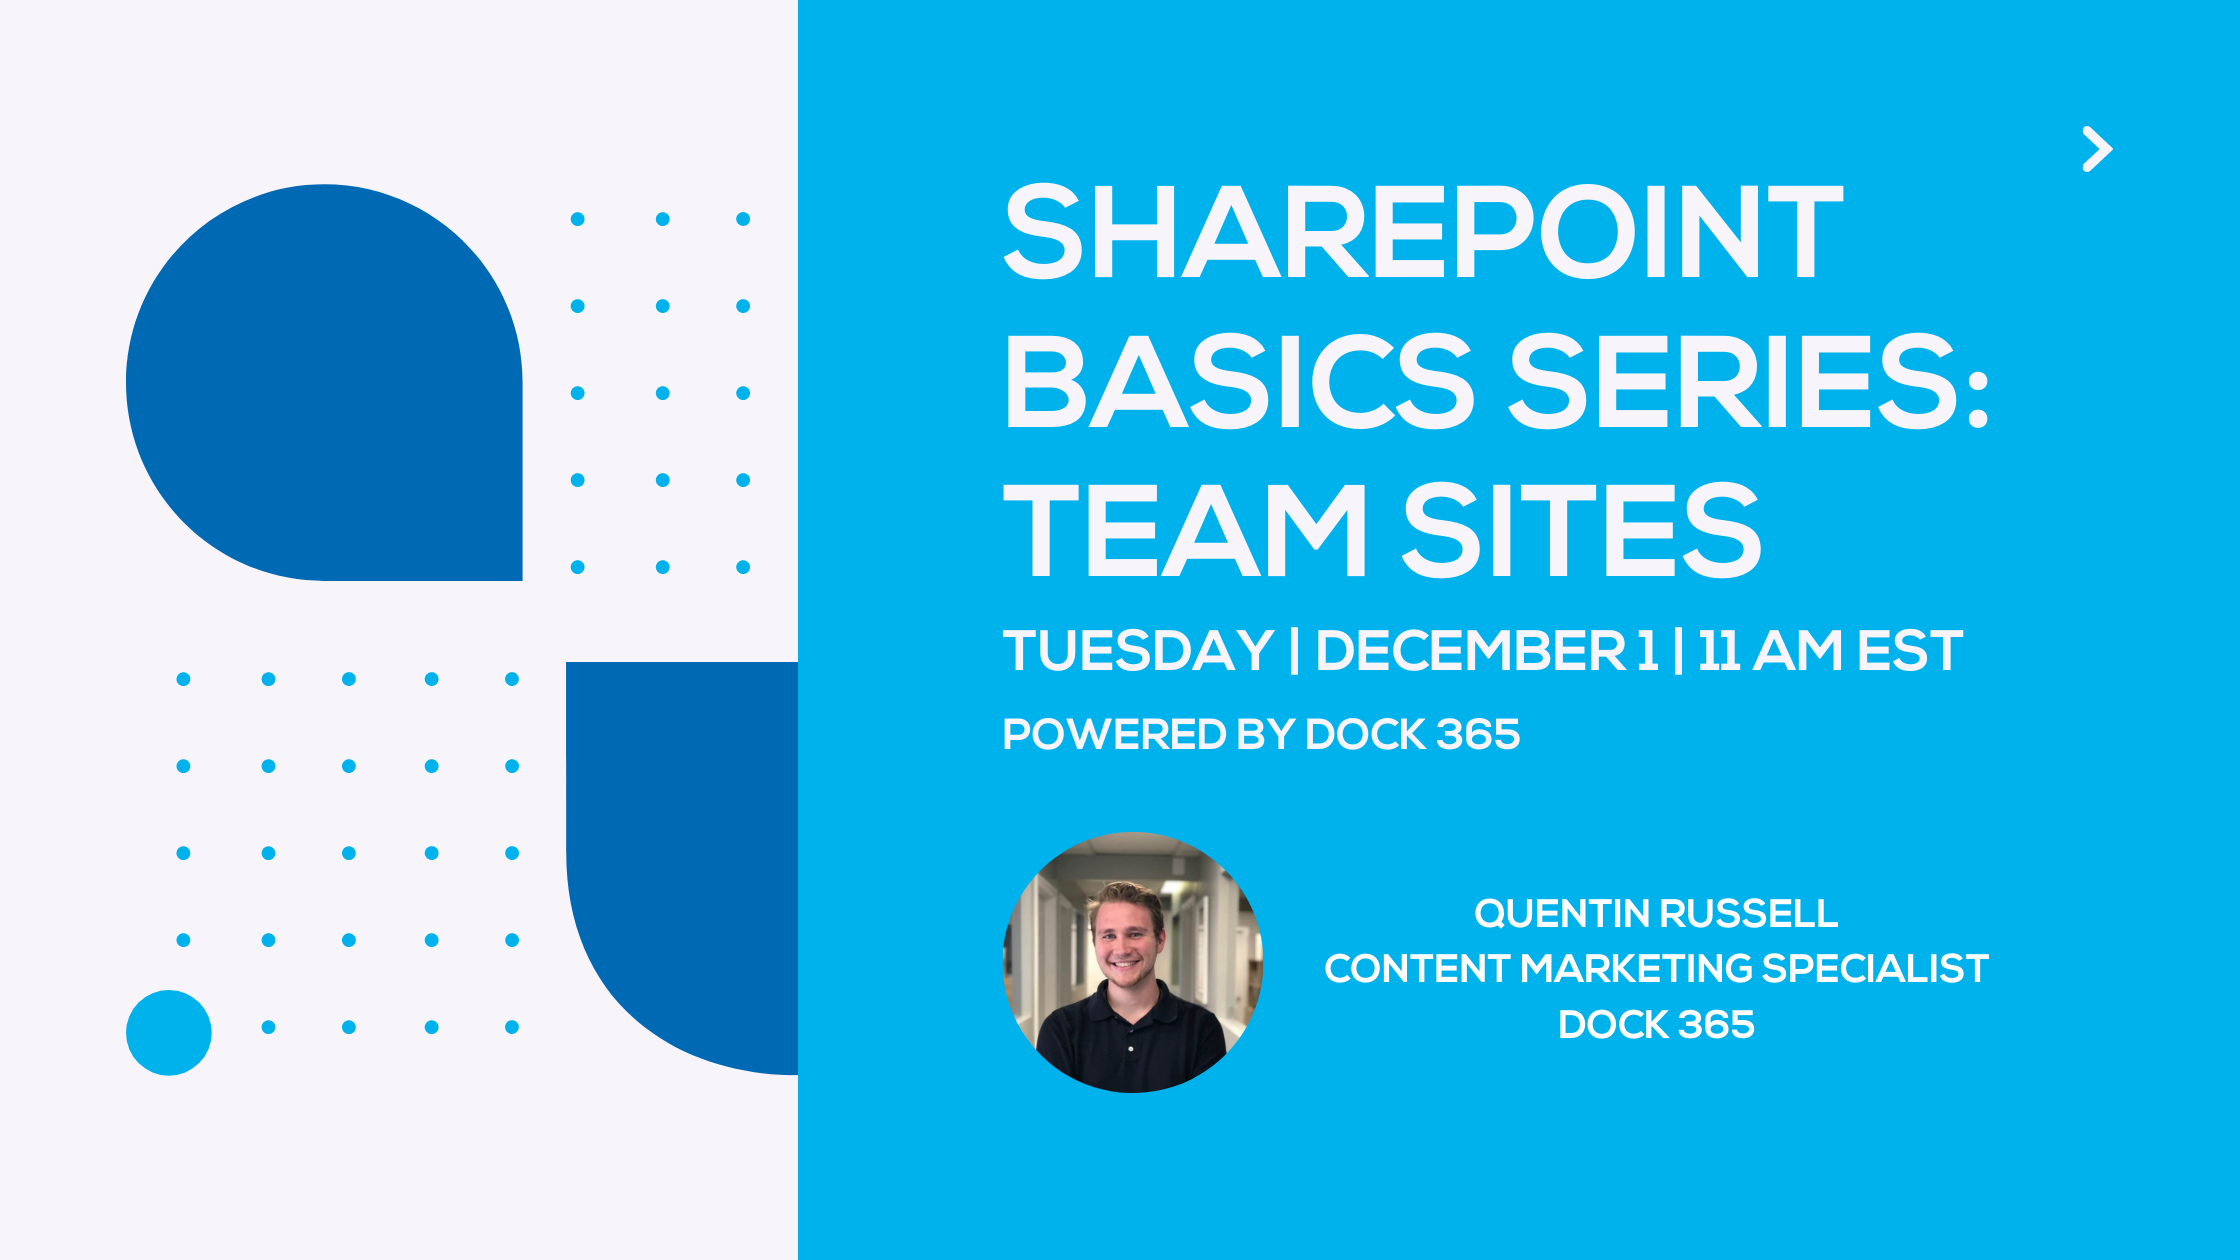 SharePoint webinar - SharePoint basics series: team sites